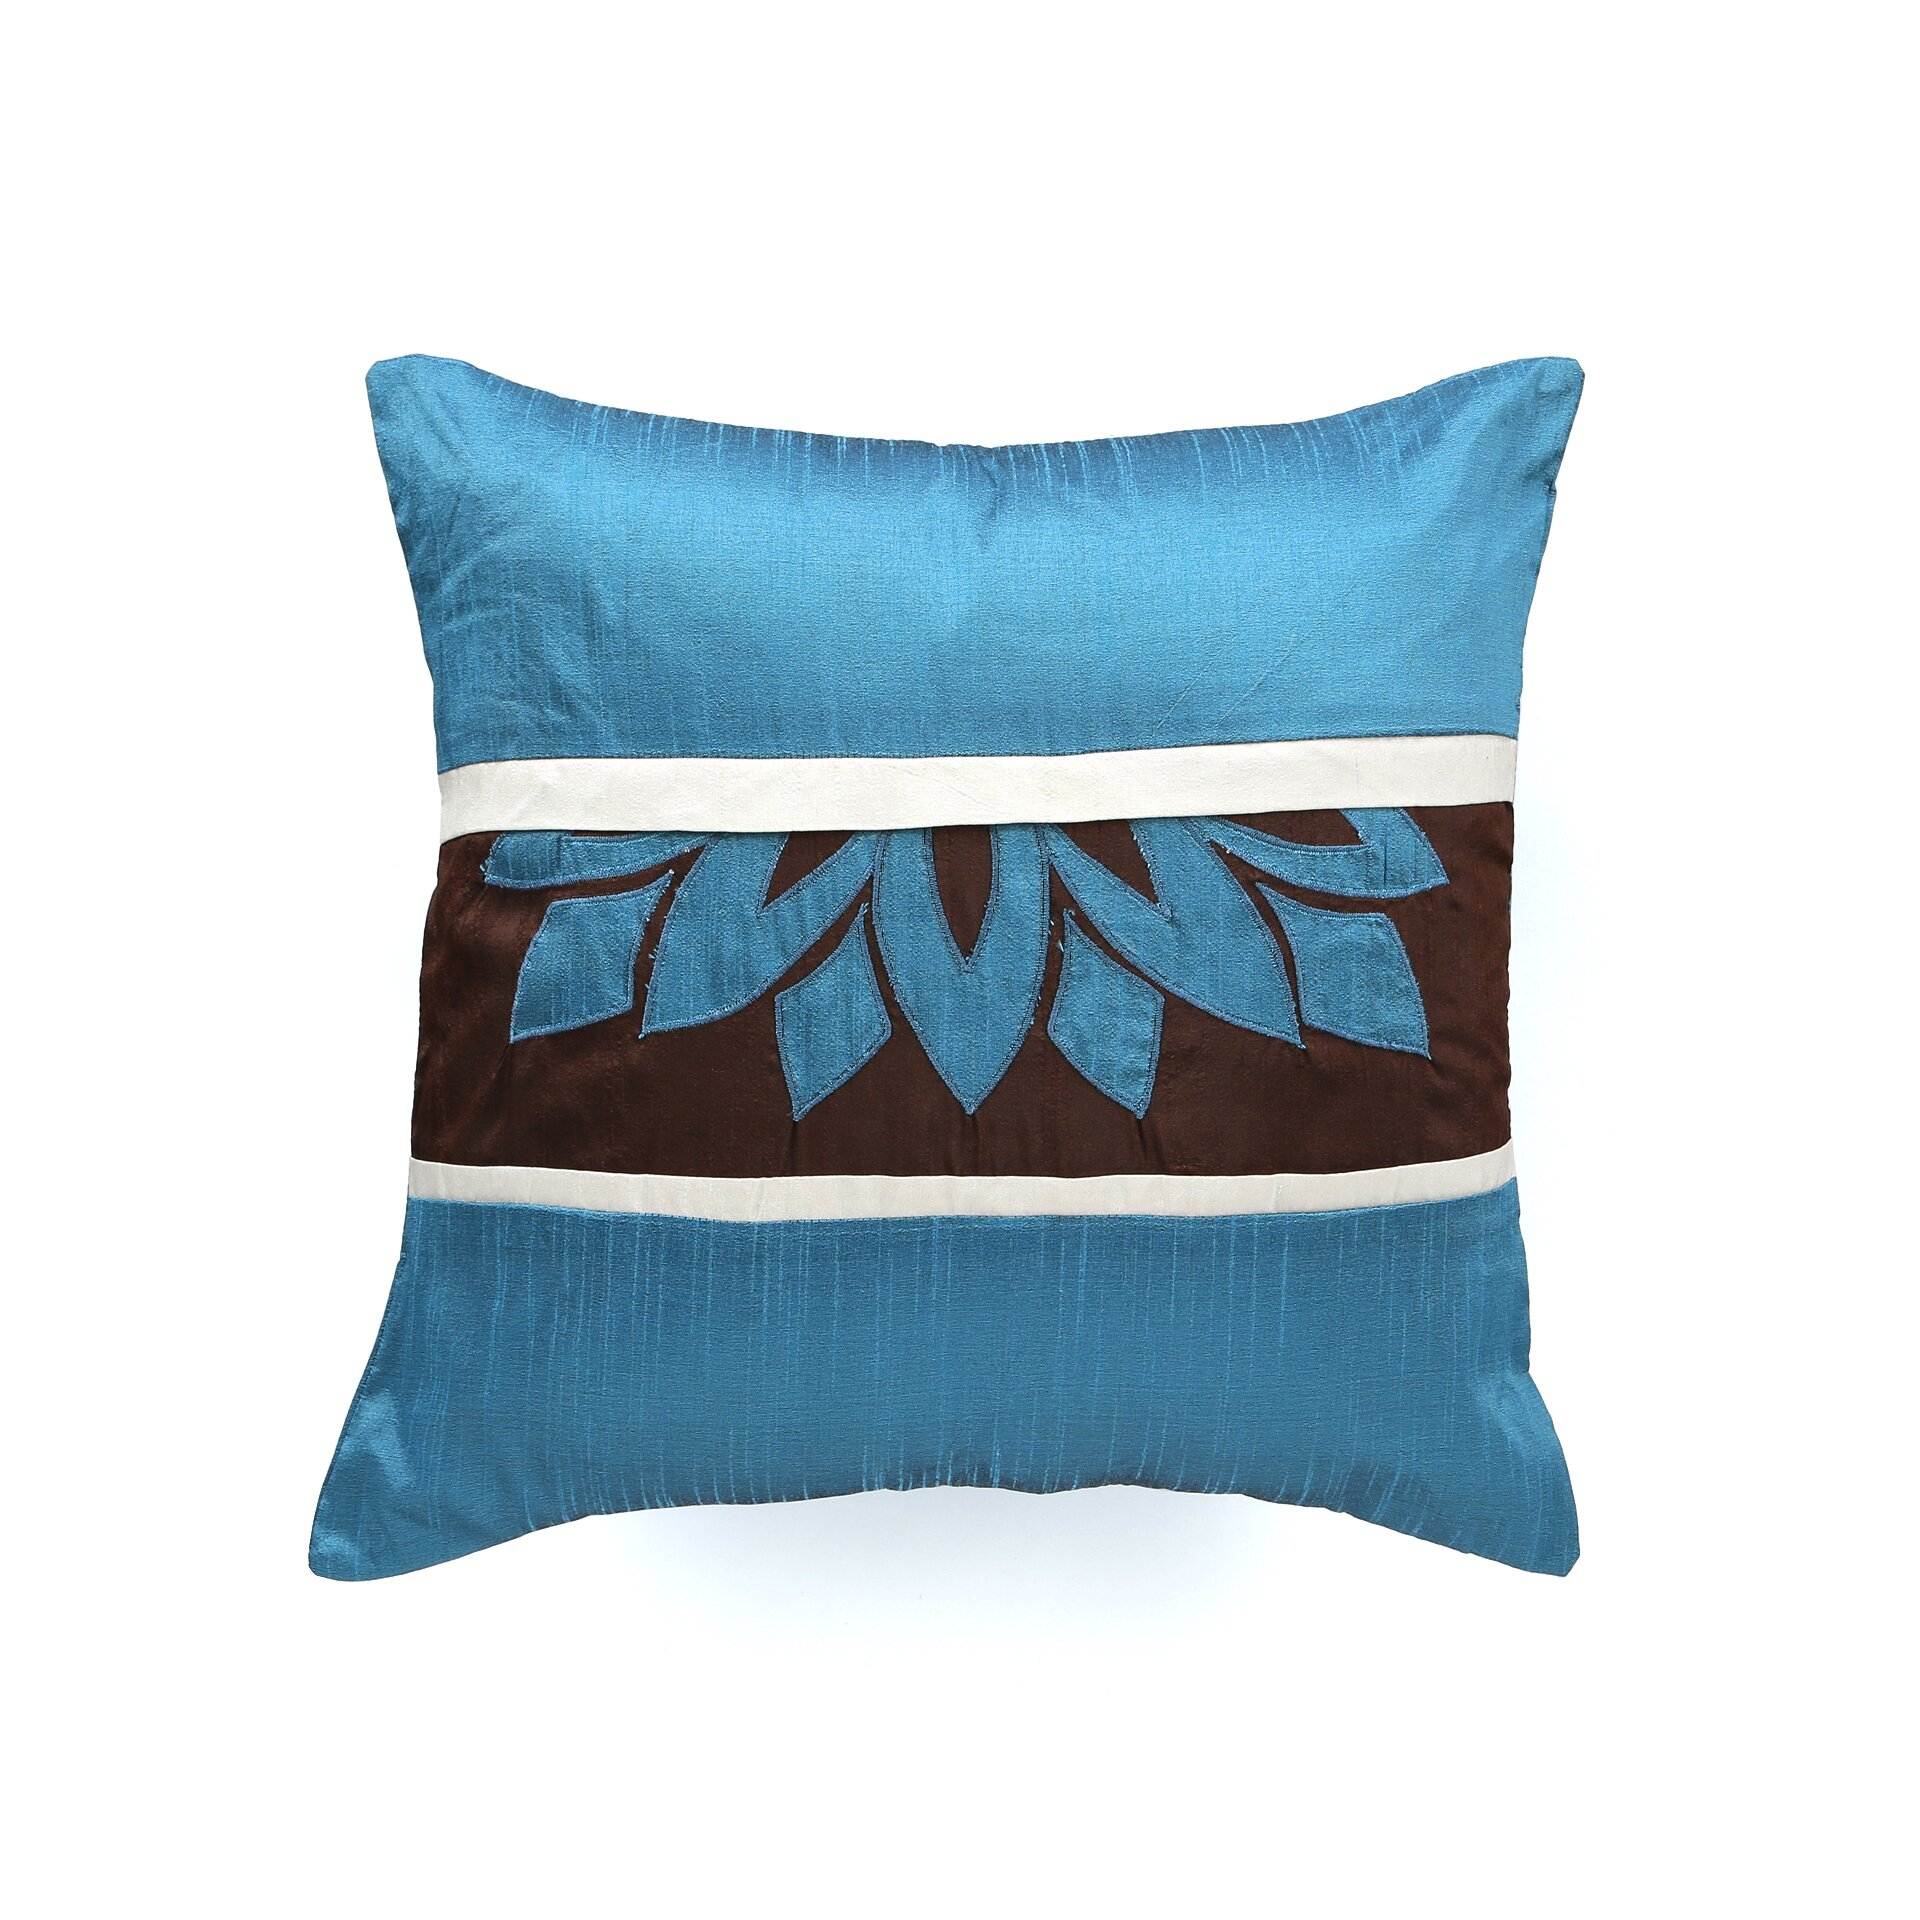 Decorative Pillow Wayfair : Rizzy Home Decorative Throw Pillow & Reviews Wayfair